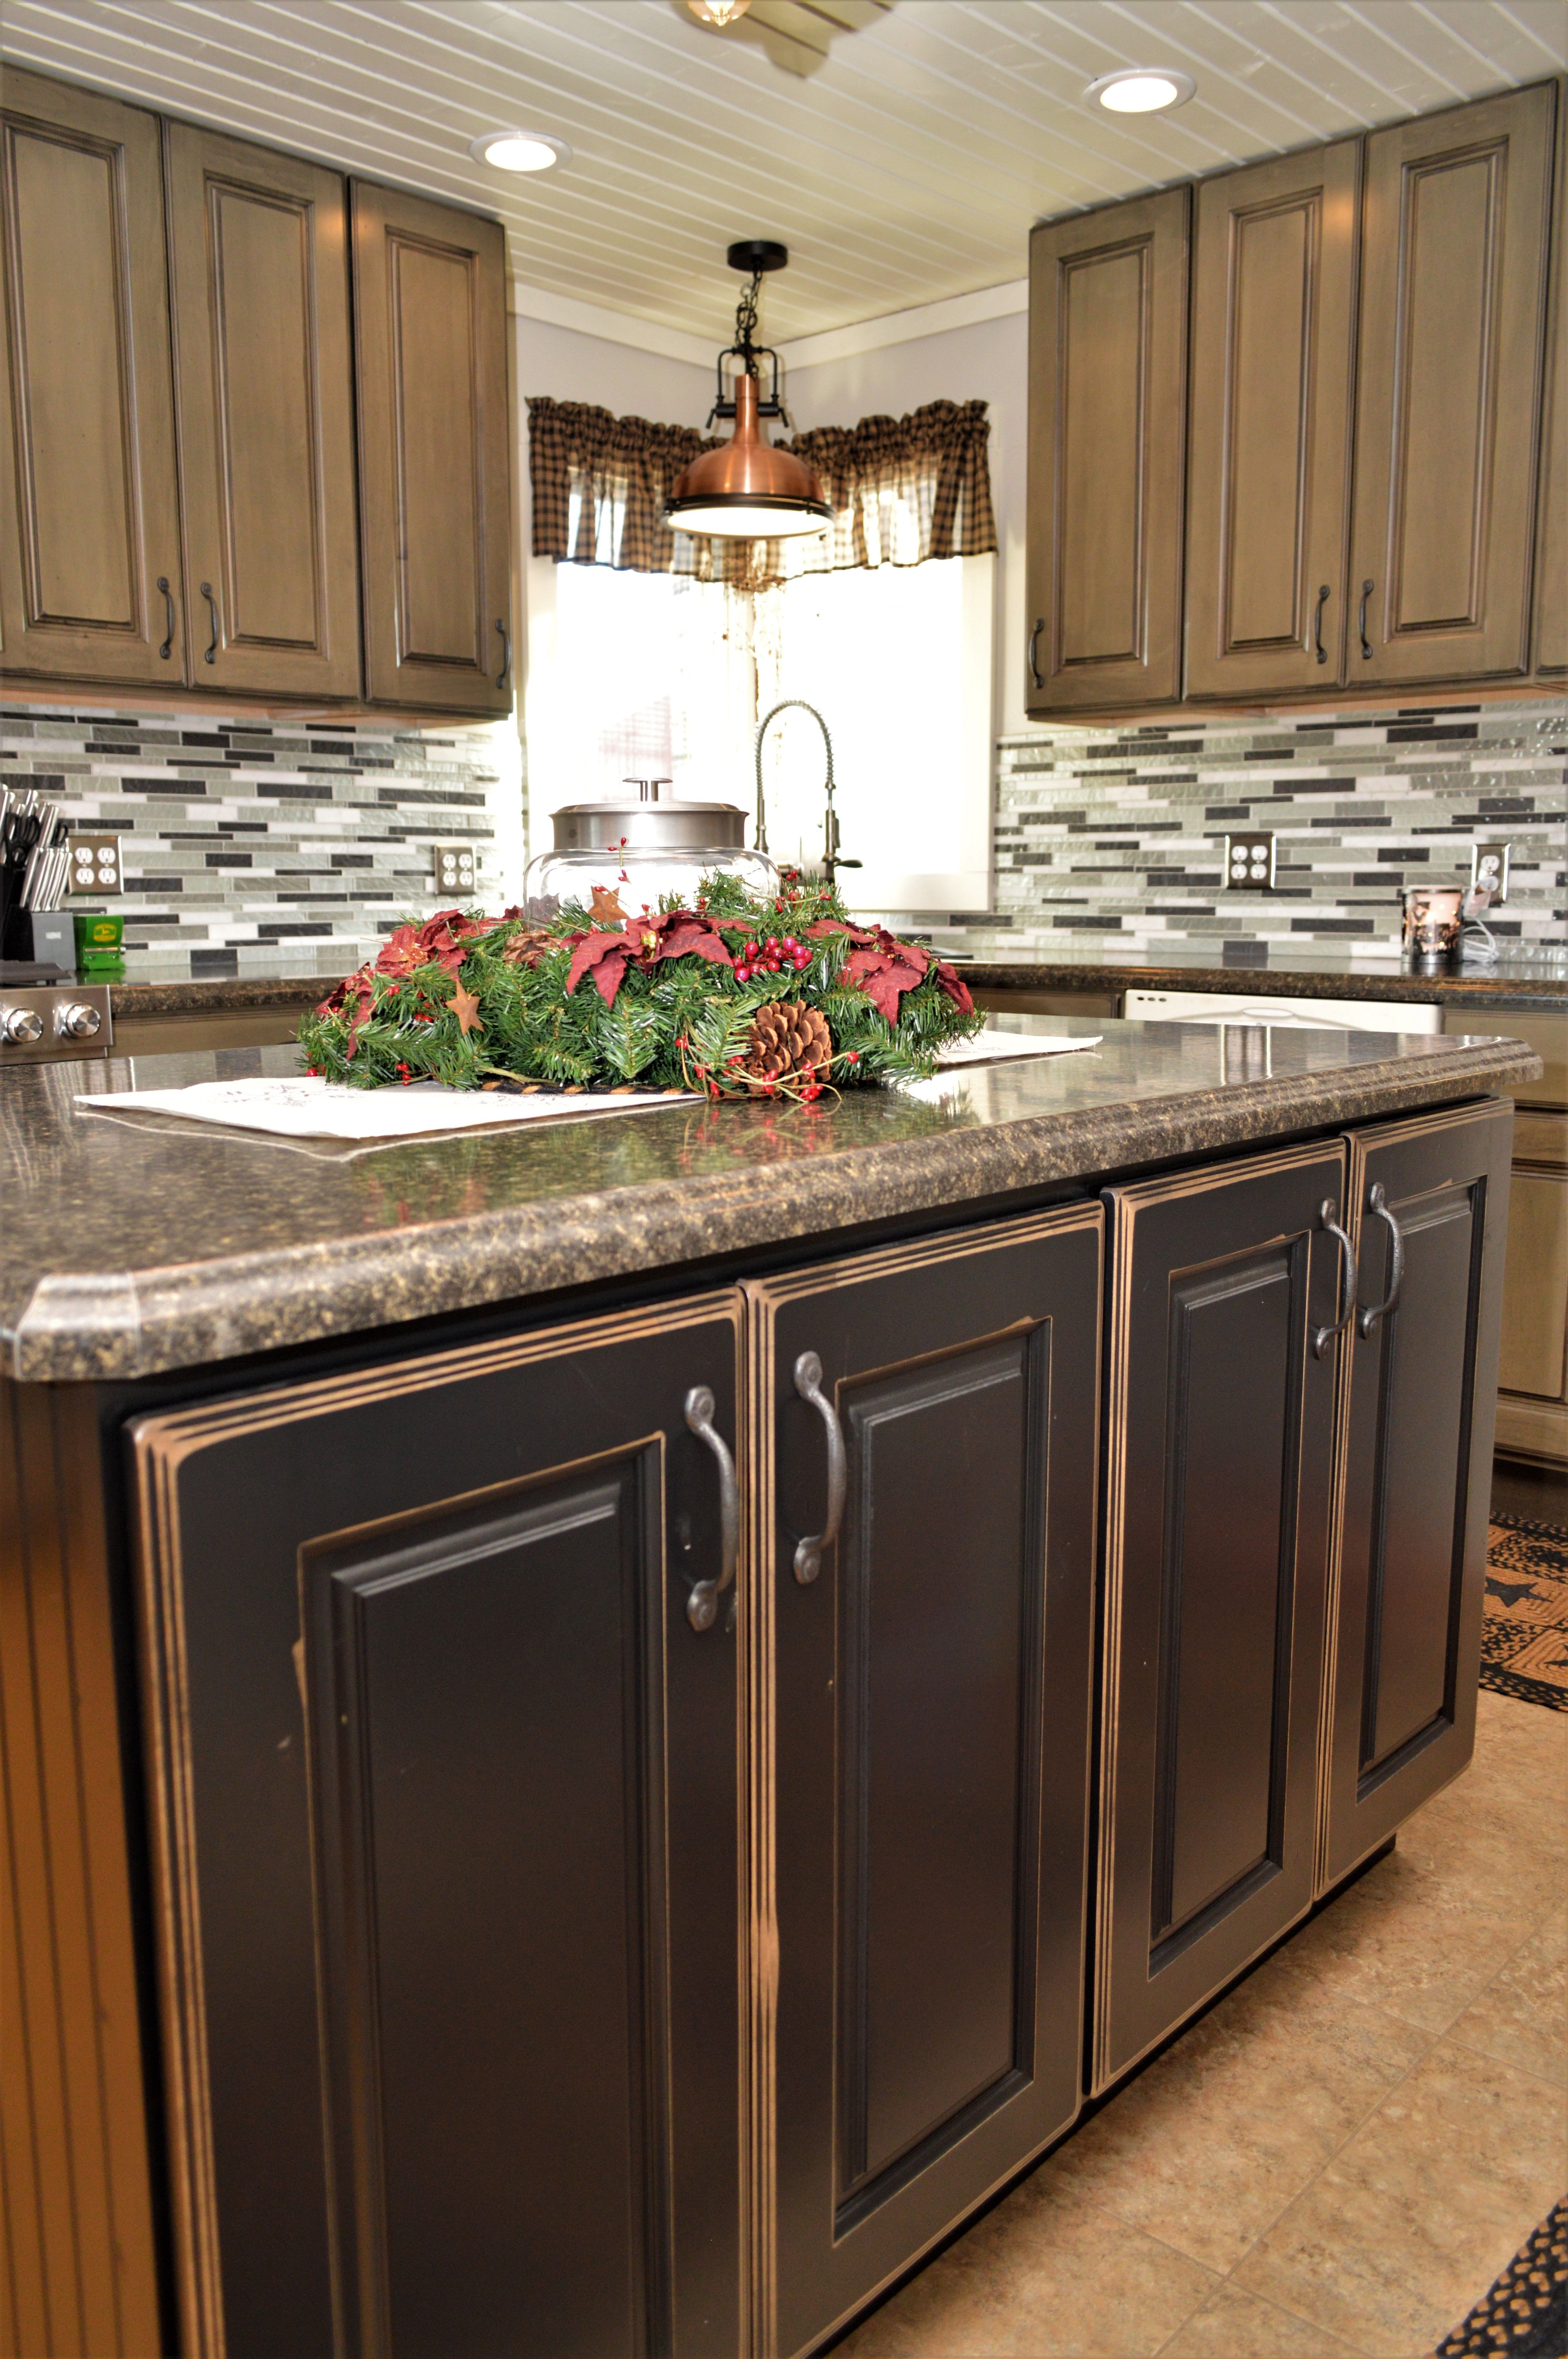 Cabinet Brand Haas Signature Collection Wood Species Maple Cabinet Finish Black Door Style Dover Kitchen Kitchen Cabinets Countertops